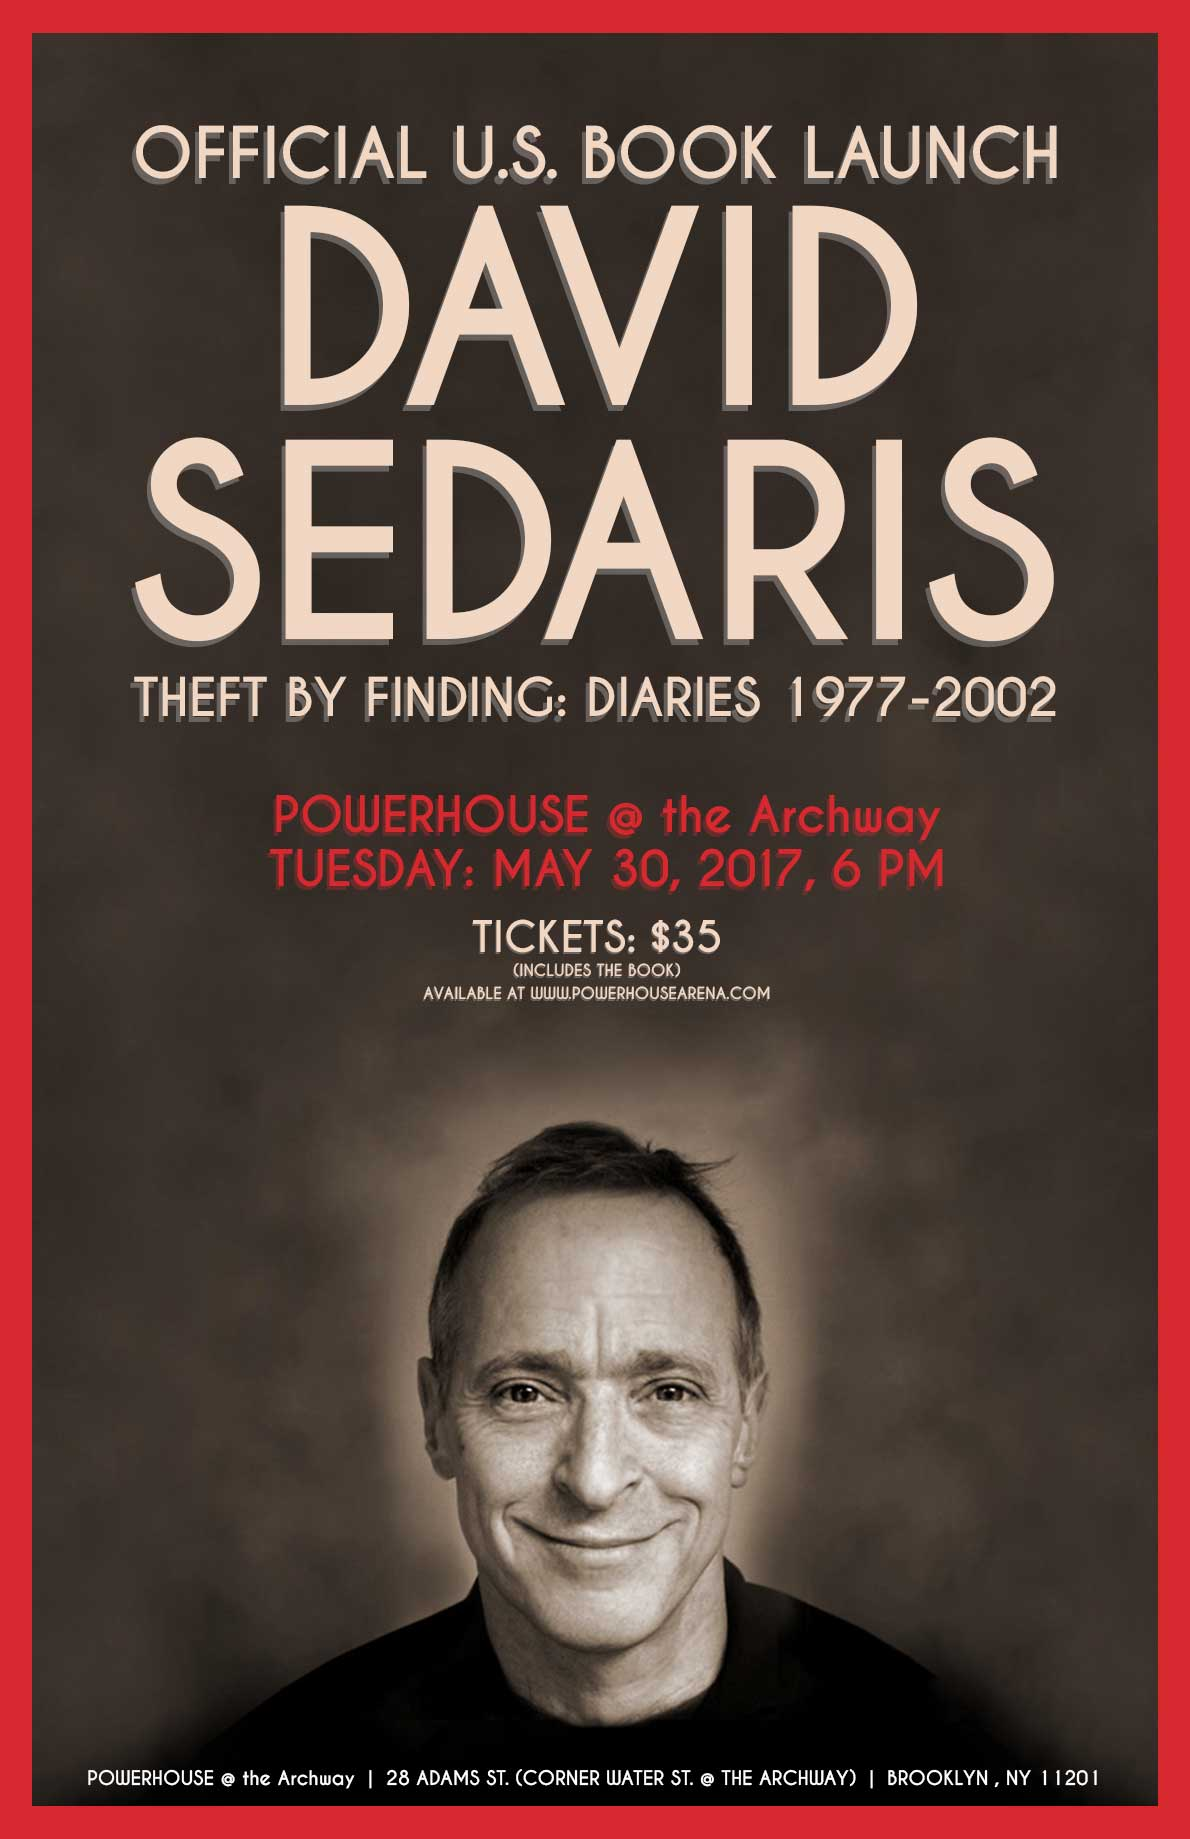 U.S. BOOK LAUNCH: THEFT BY FINDING: DIARIES 1977-2002 by David Sedaris